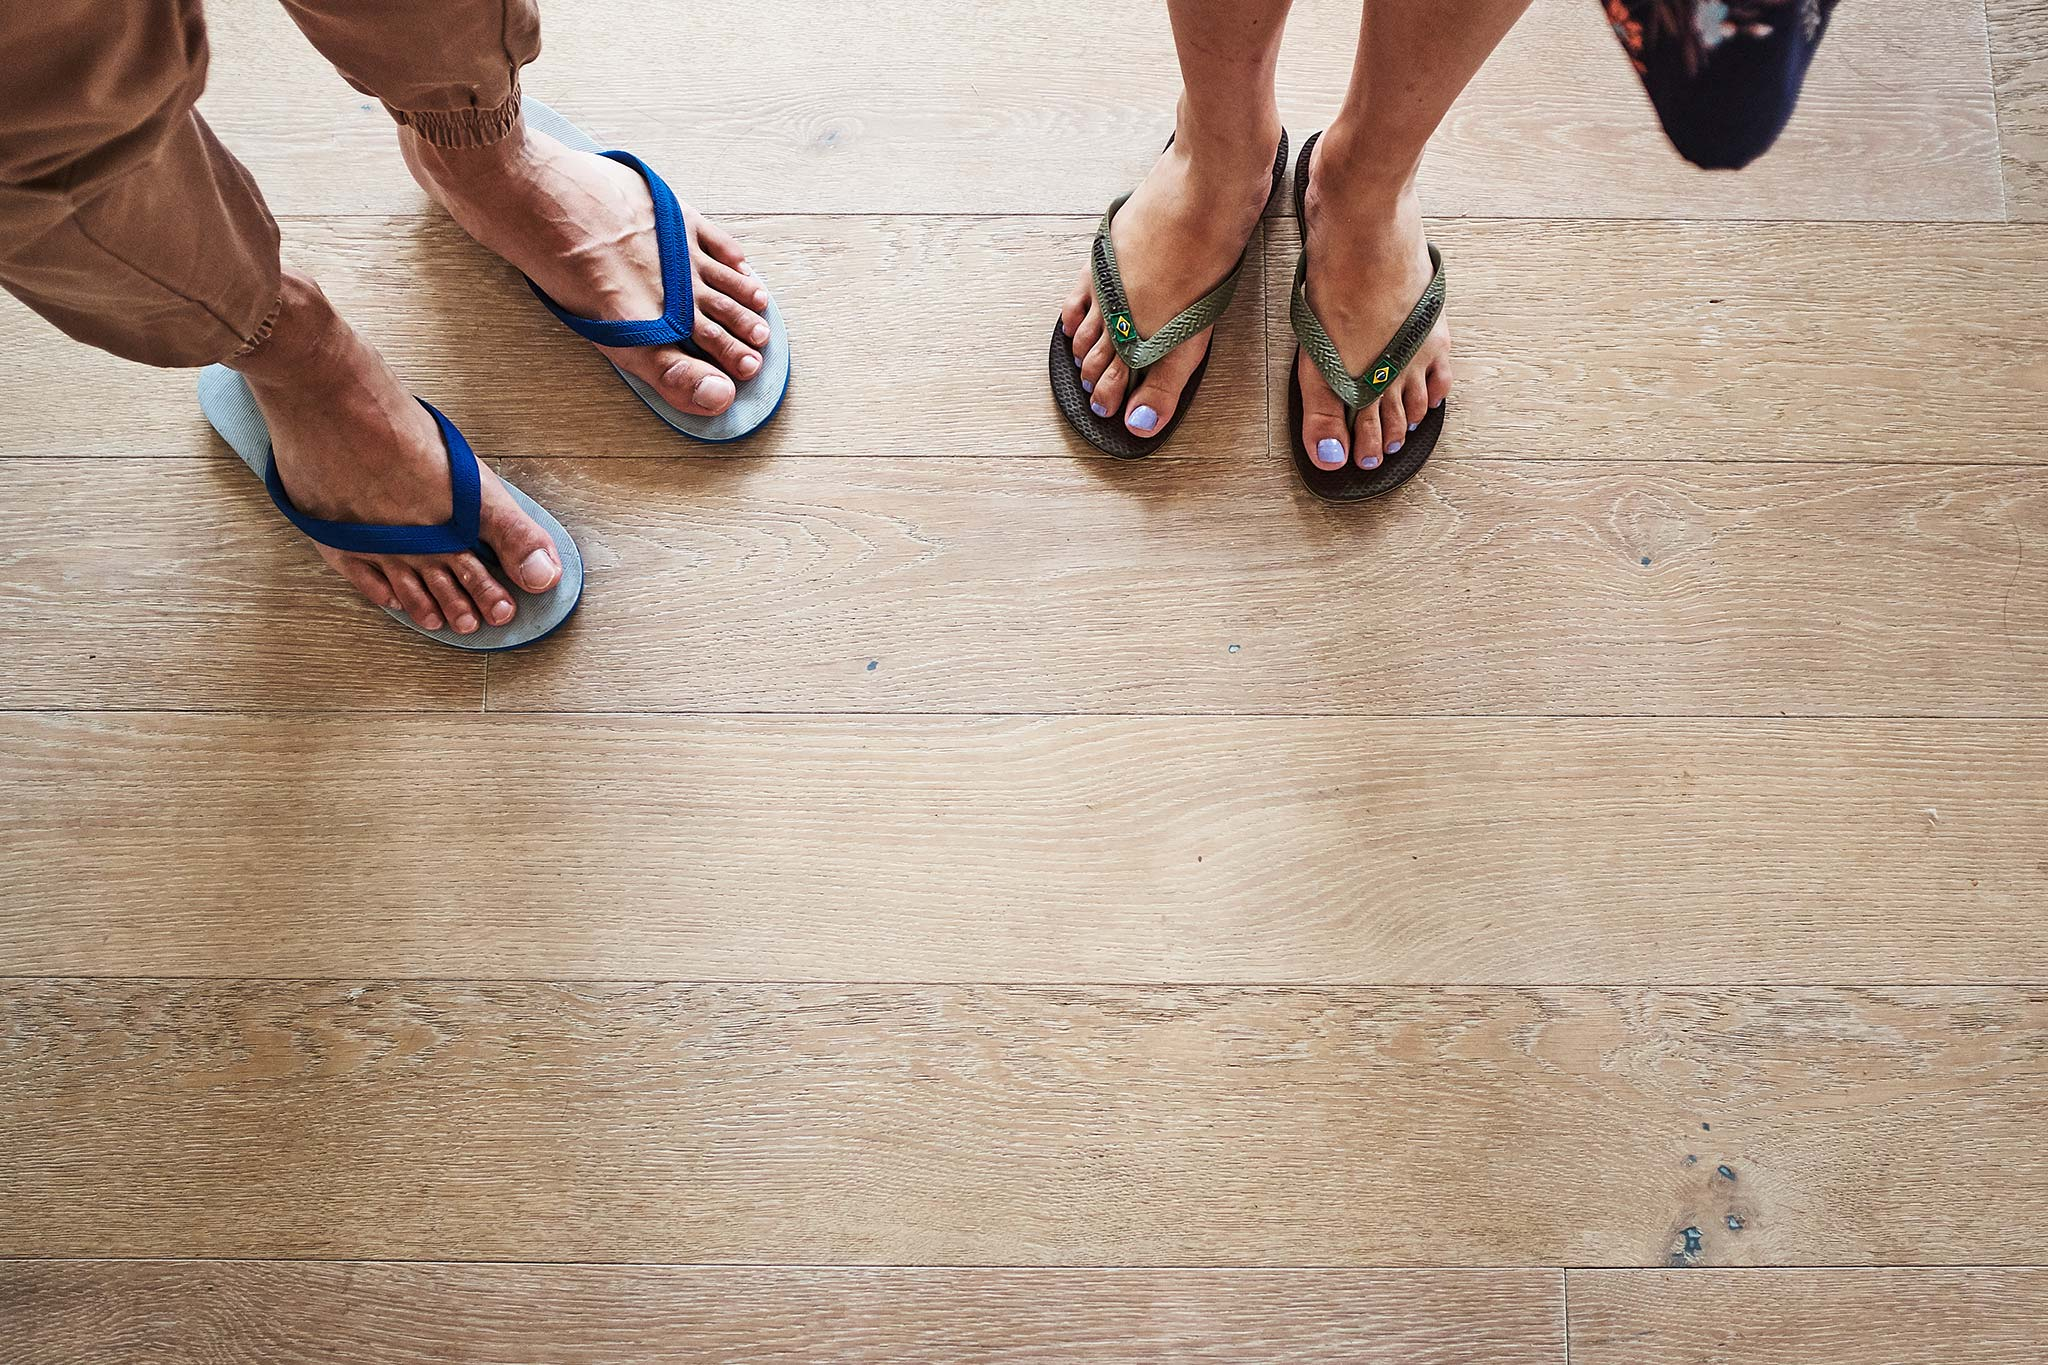 windsor-engagement-lifestyle-photographer-melbourne-home-slippers